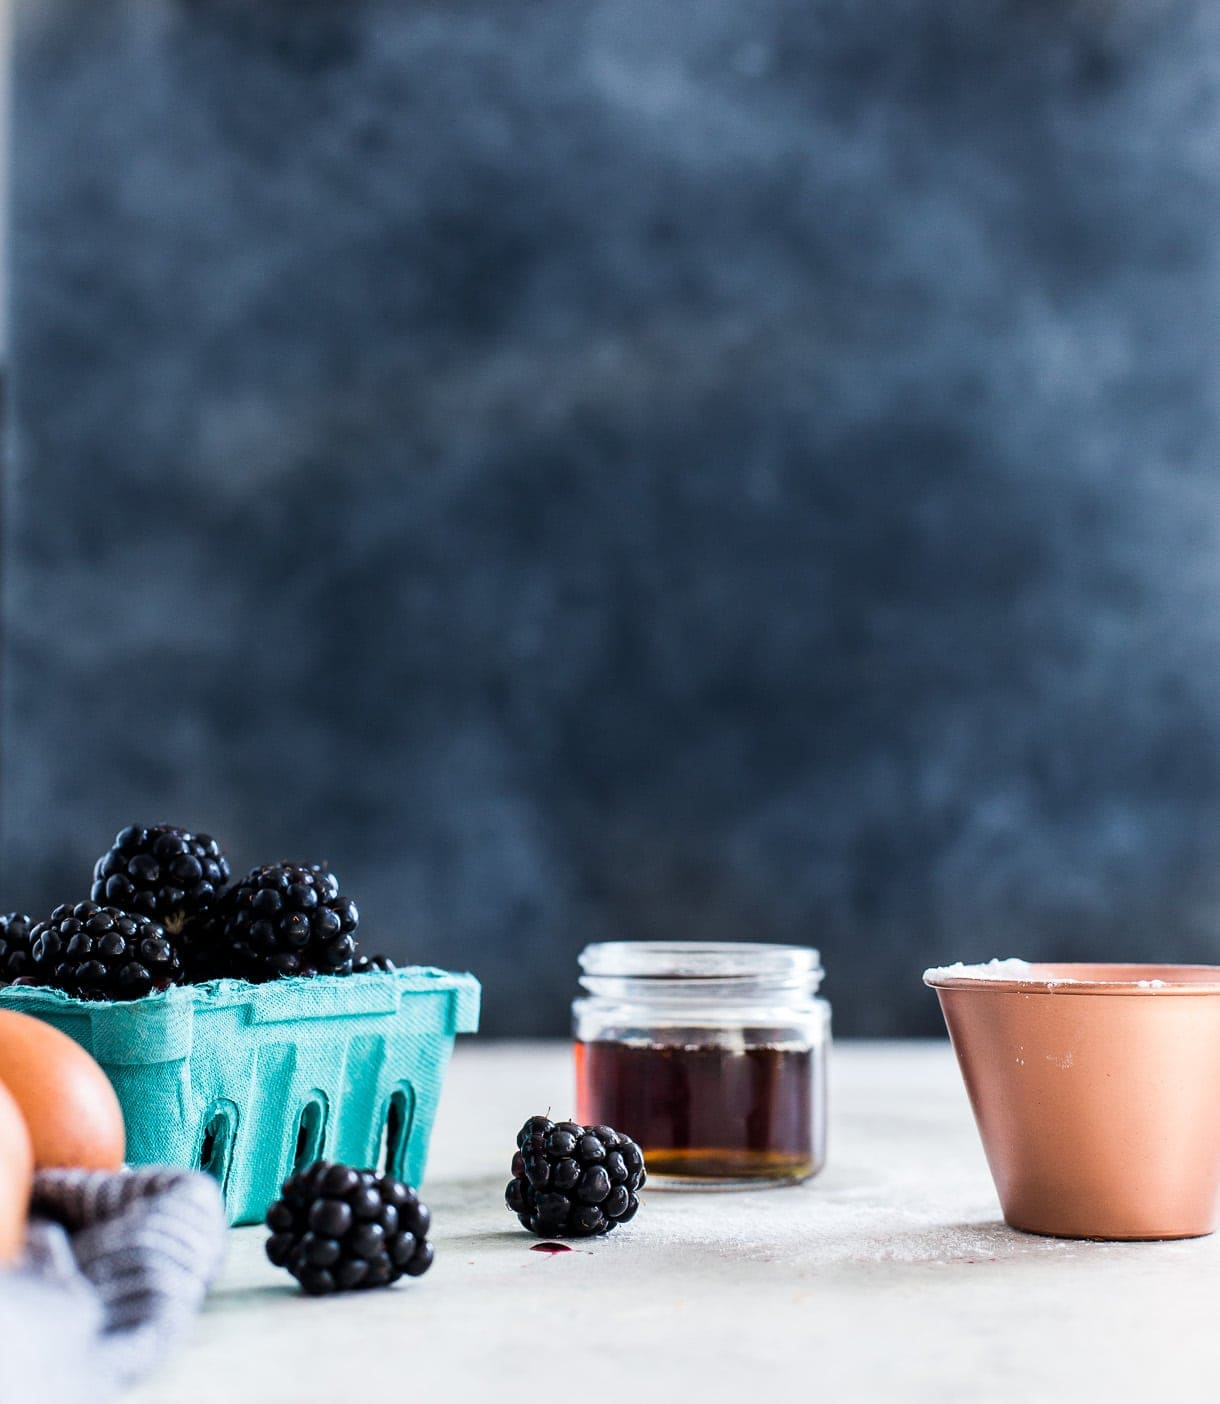 Blackberry Baked Custard {a cross between a pudding and claufoutis}